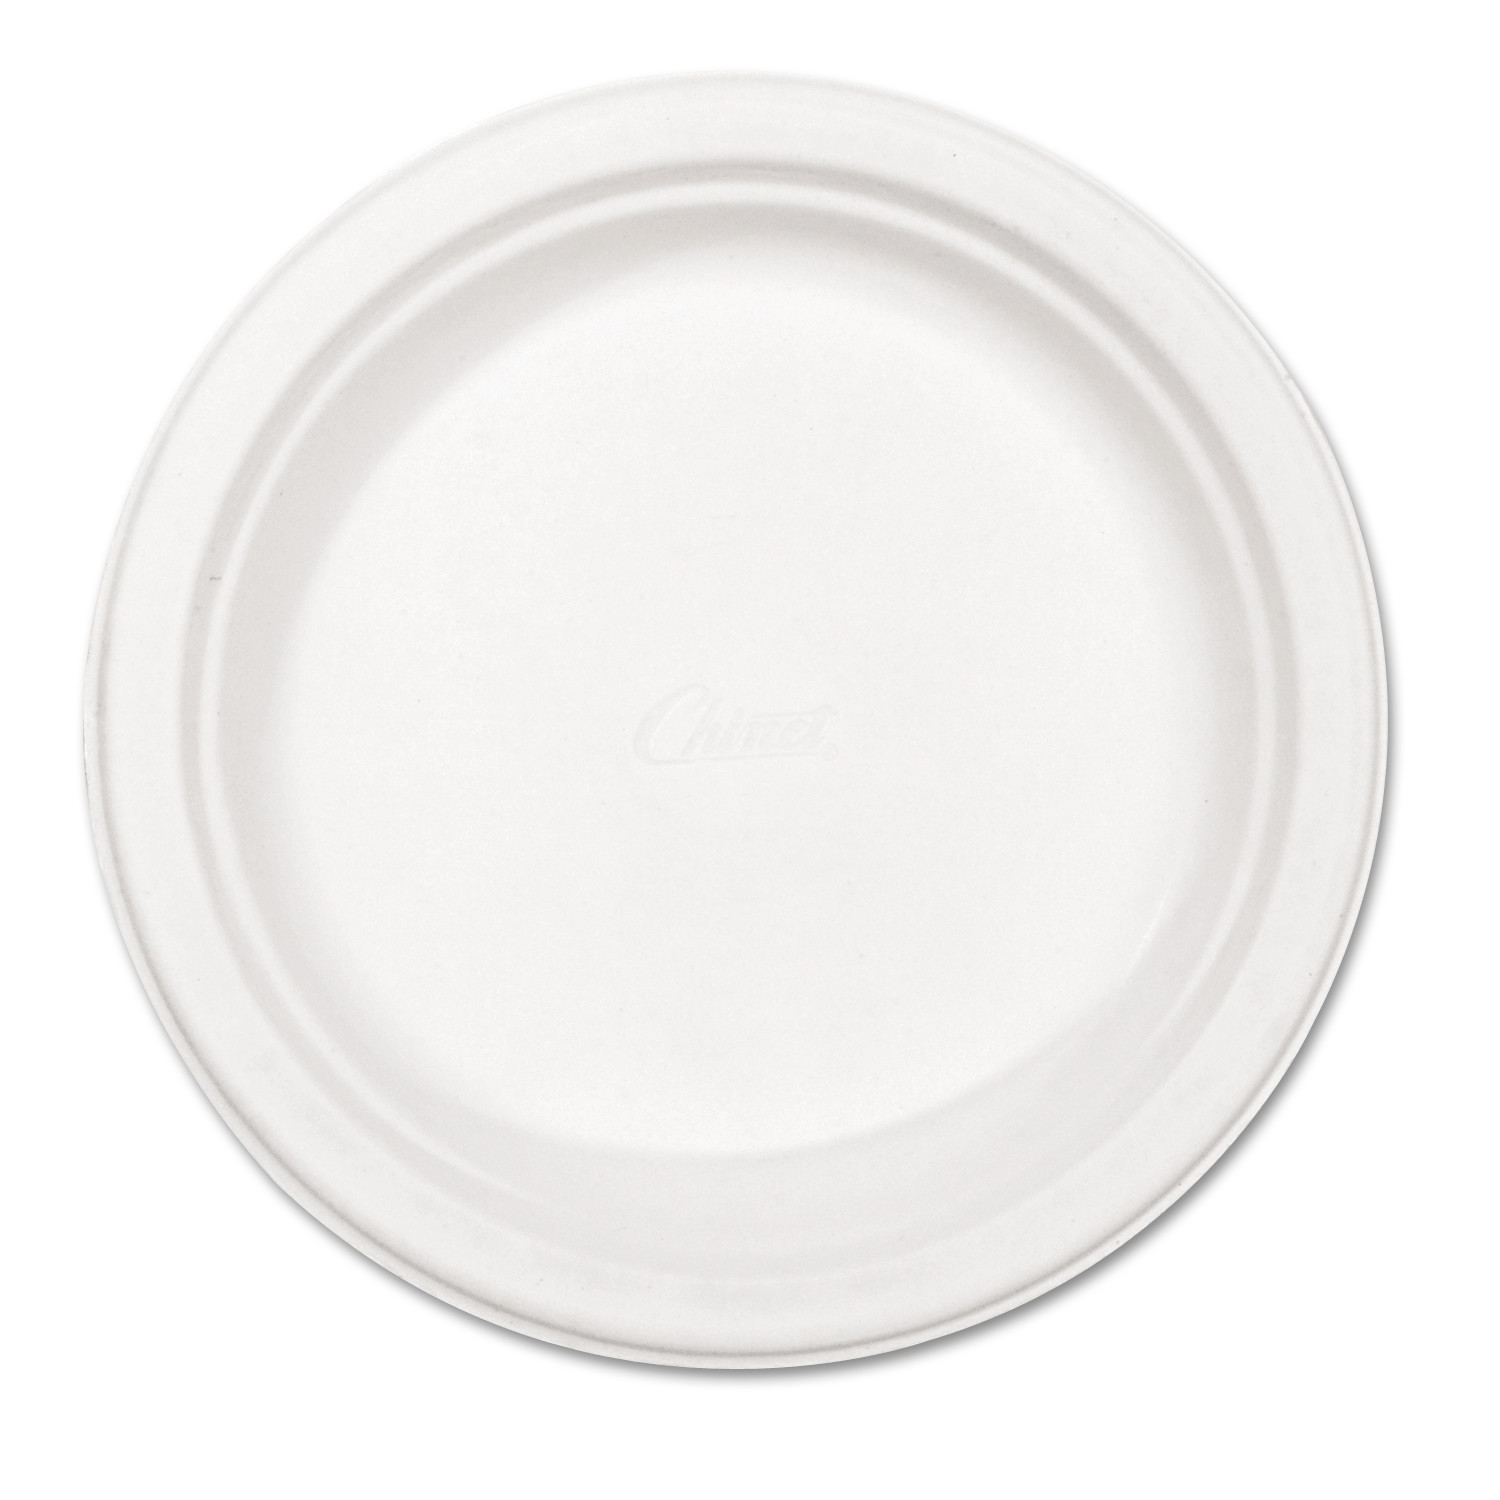 Chinet White Paper Plates 8.75  Diameter 500 count  sc 1 st  Walmart & Chinet Paper Plates